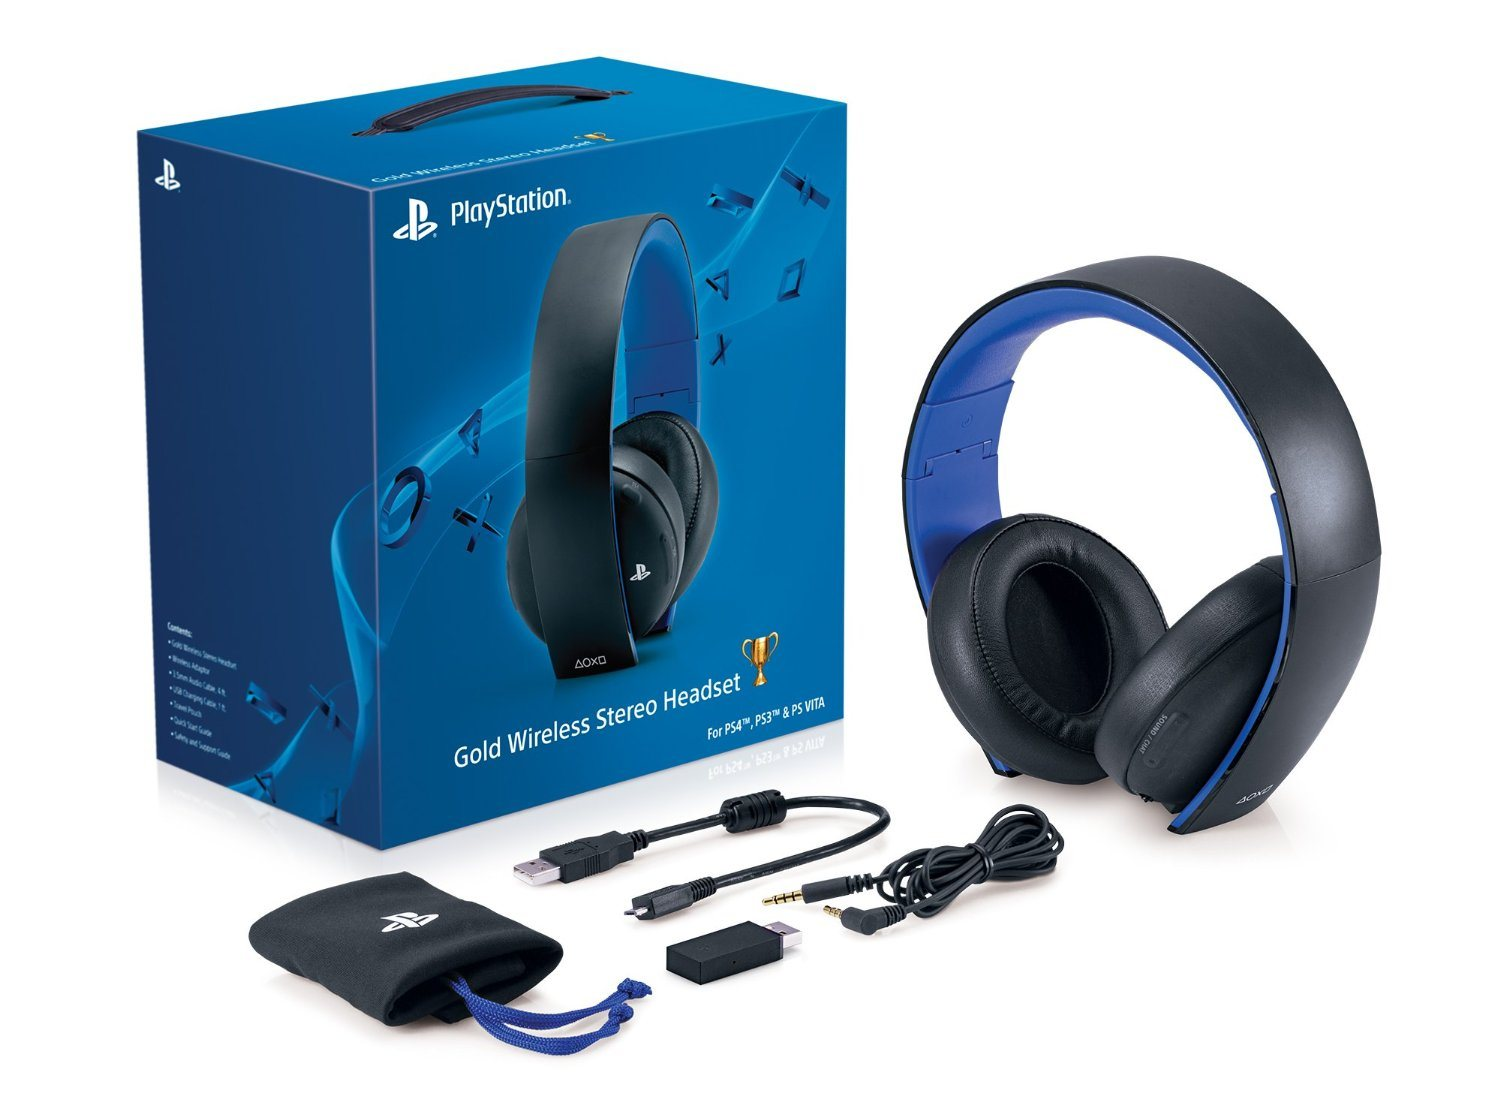 Ps4 Gold Wireless Headset Will Work With Xbox One Via Chat Adapter